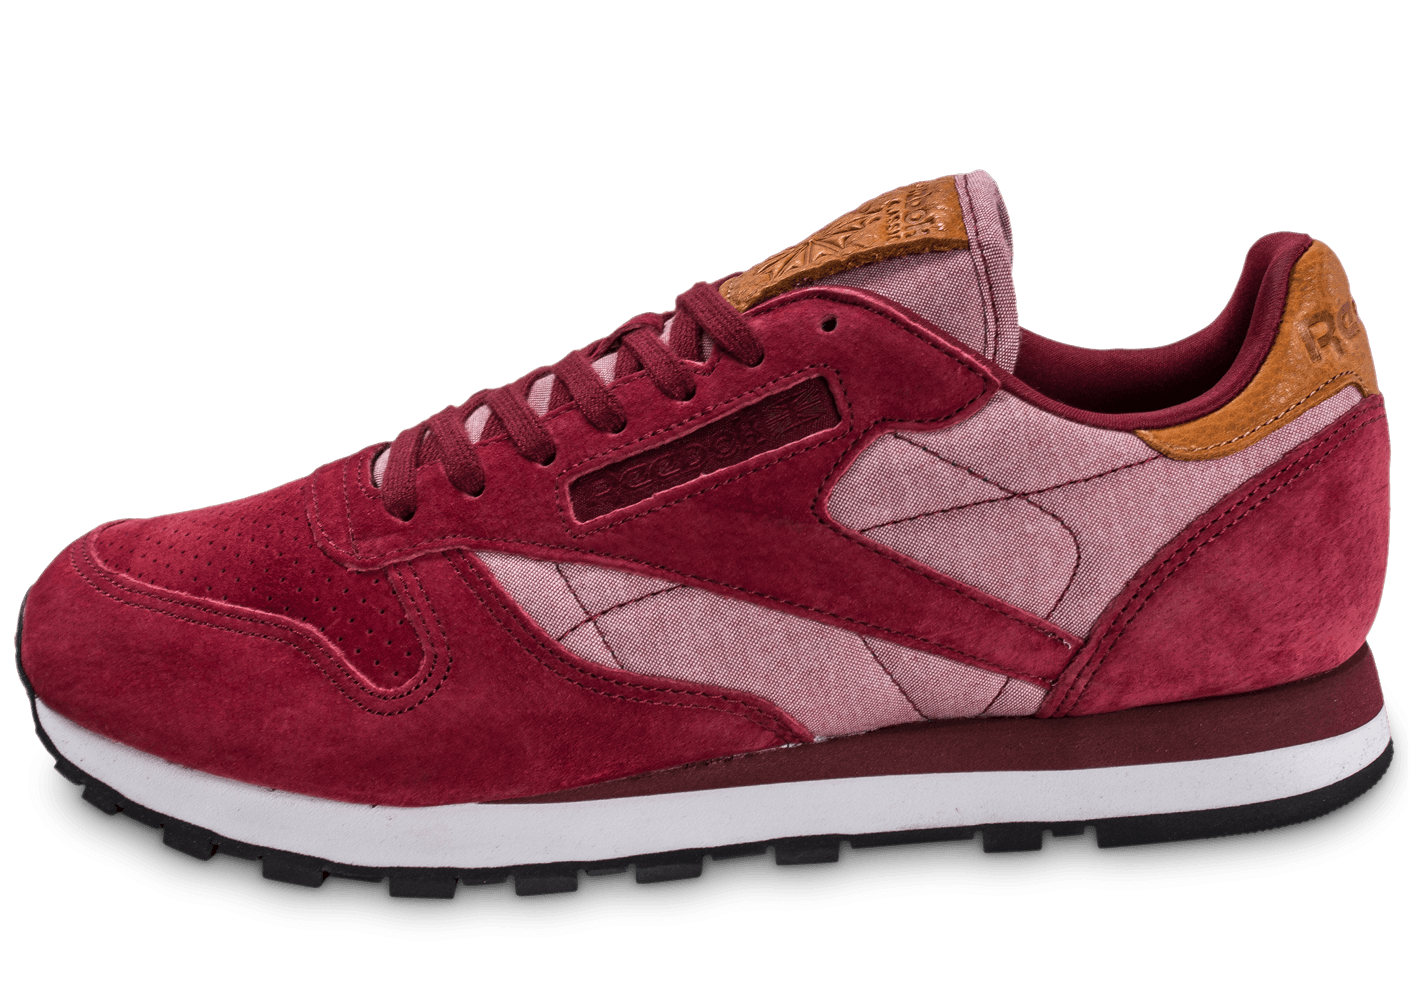 Reebok Homme Bordeaux Leather Chambray Classic Baskets Chaussures WvqUfgBHw